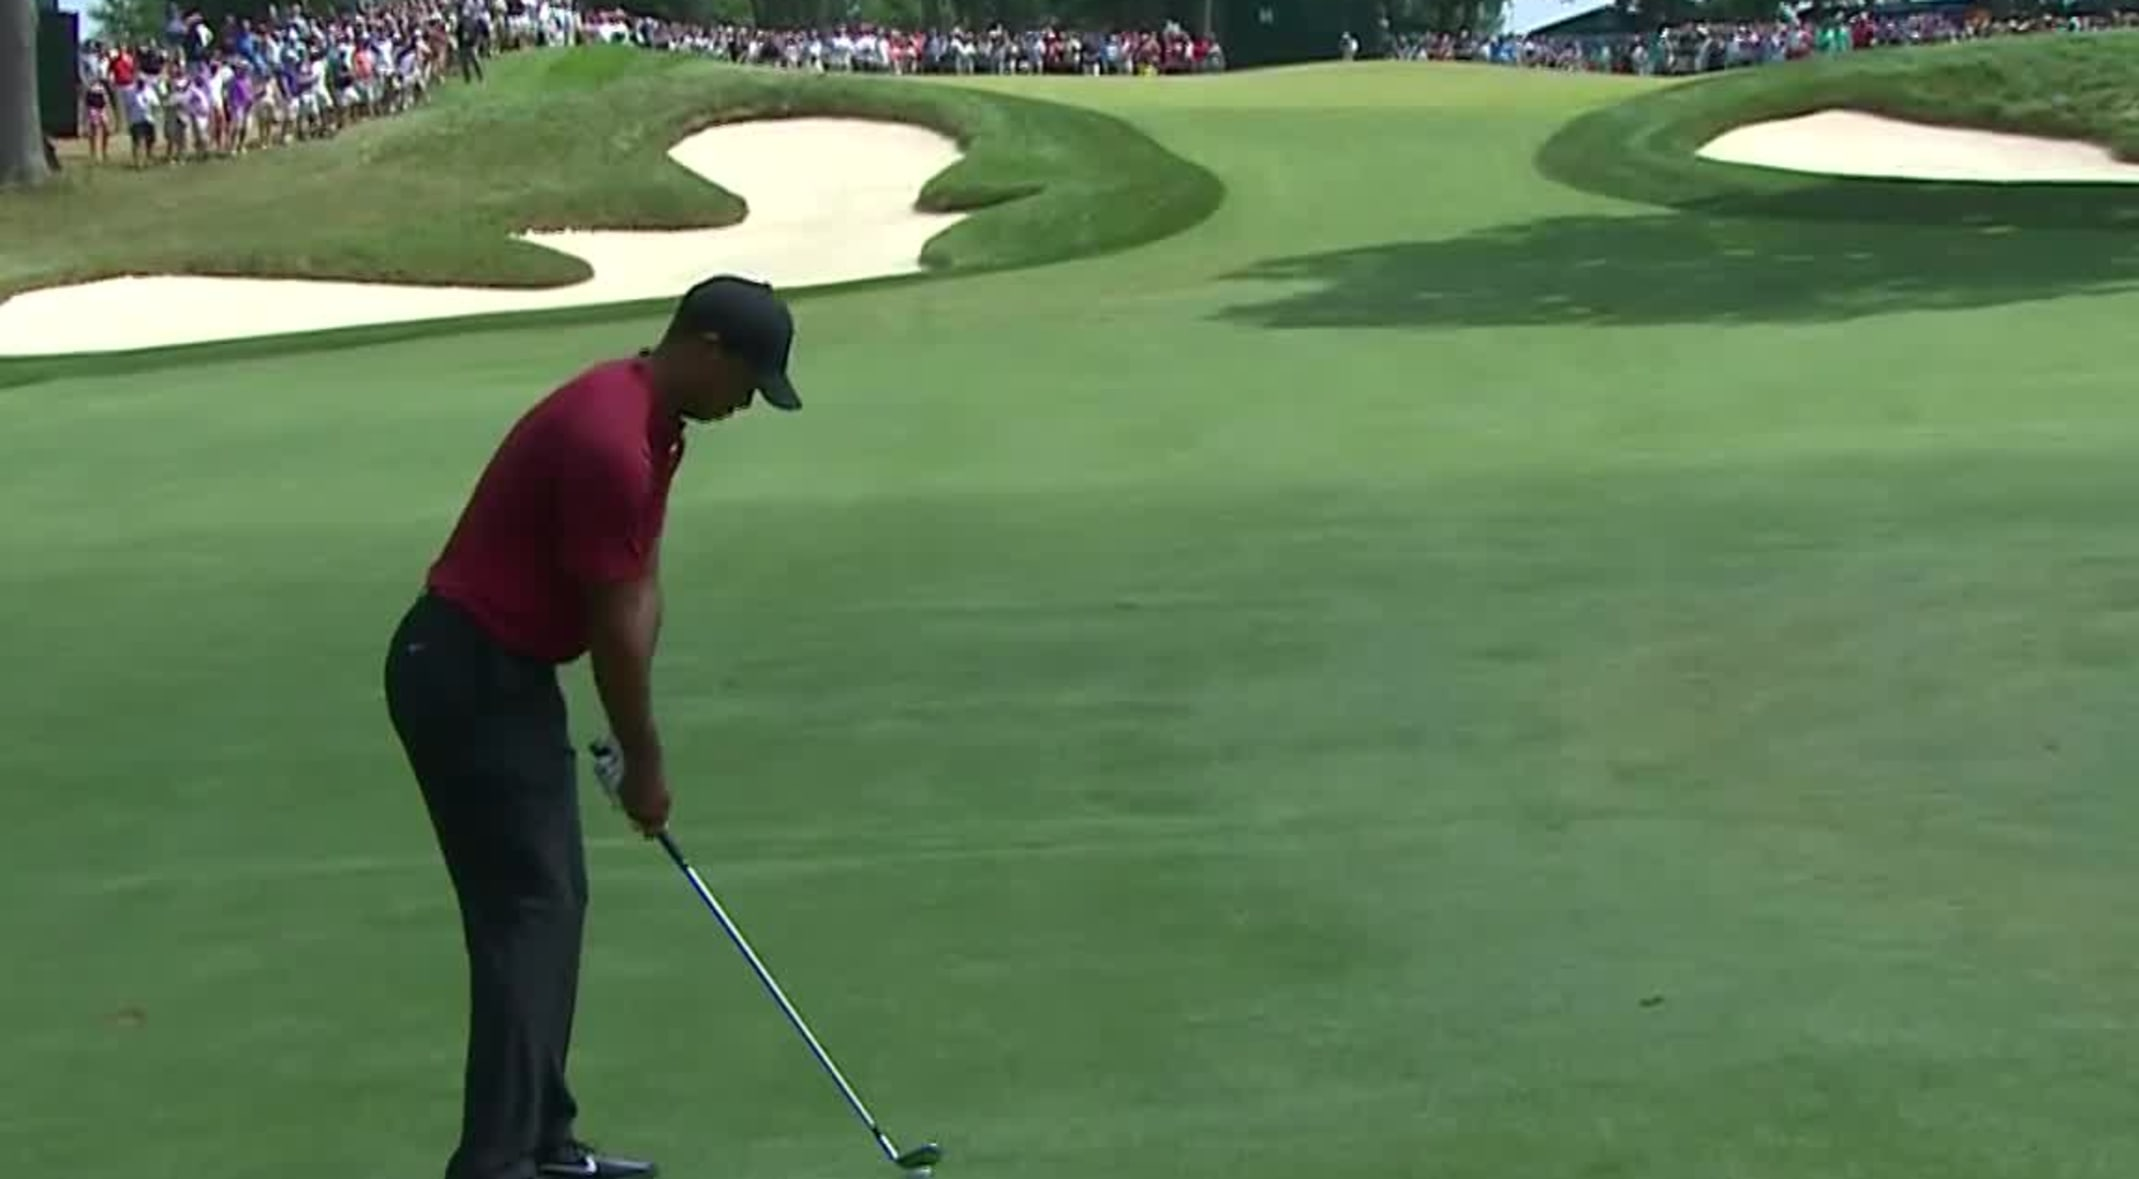 7b3185be In the final round of THE NORTHERN TRUST 2018, Tiger Woods hits his 135-